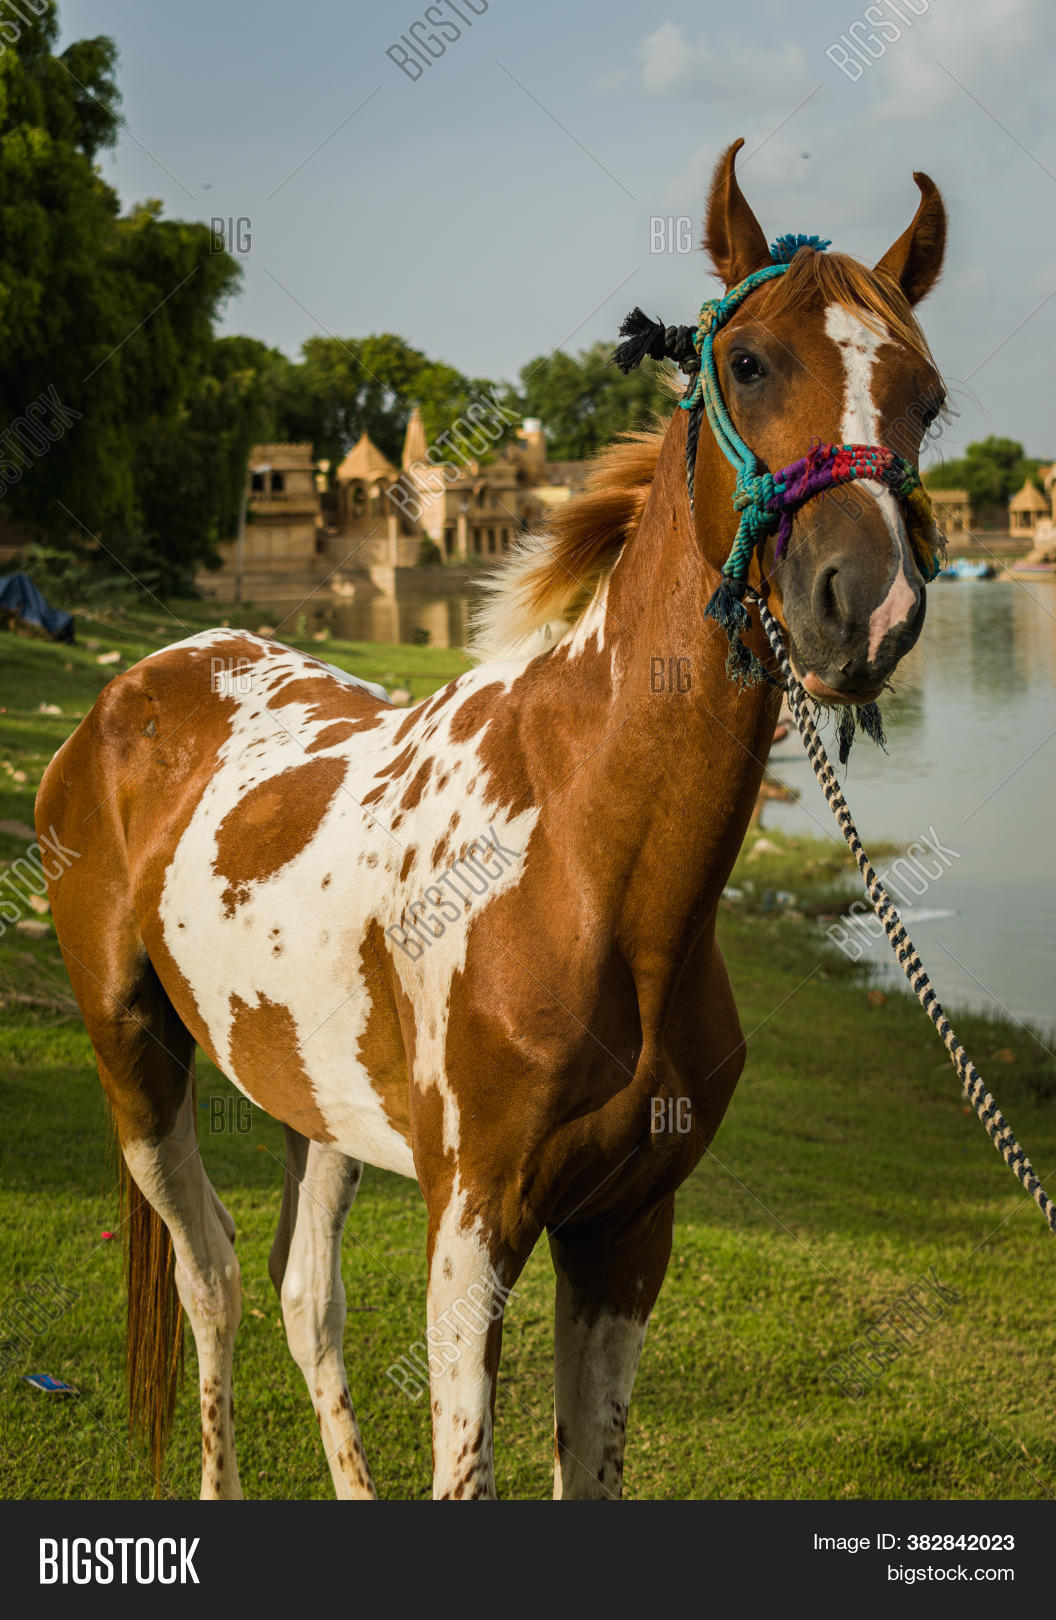 Baby Horse Standing Image Photo Free Trial Bigstock